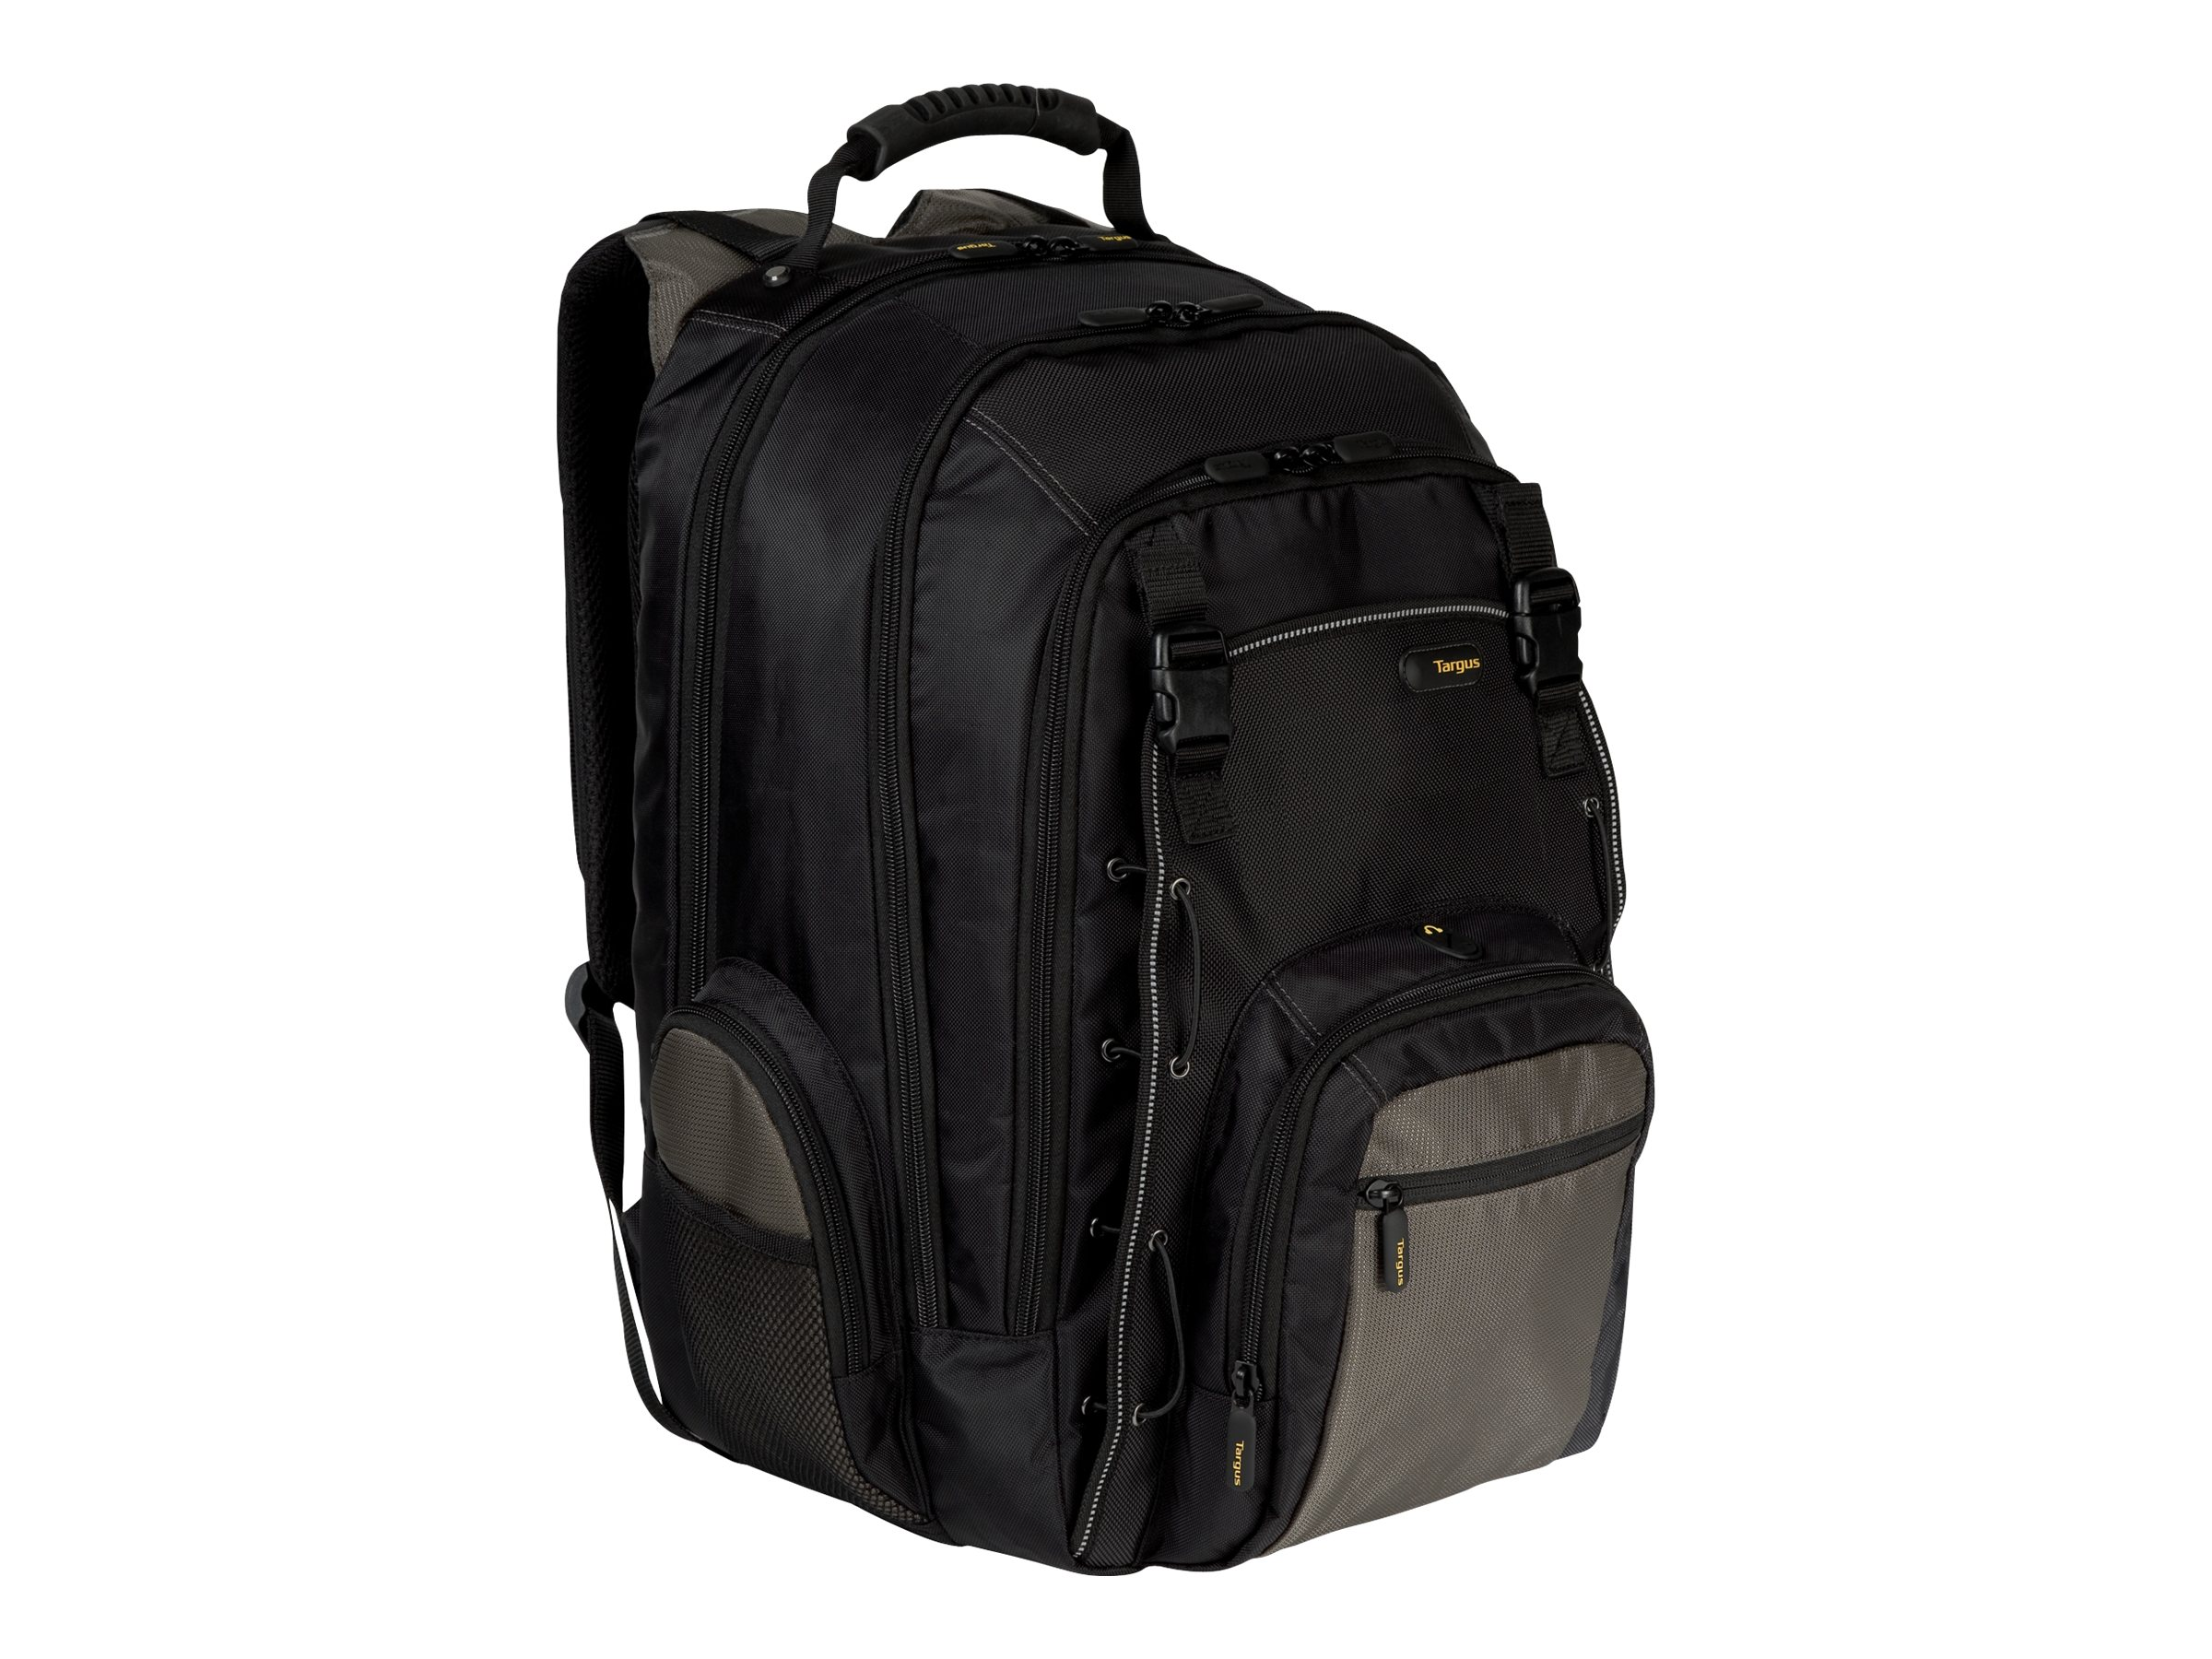 Targus CityGear 15.4 Chicago Notebook Backpack Black Gray Yellow, TCG650, 5114251, Carrying Cases - Notebook